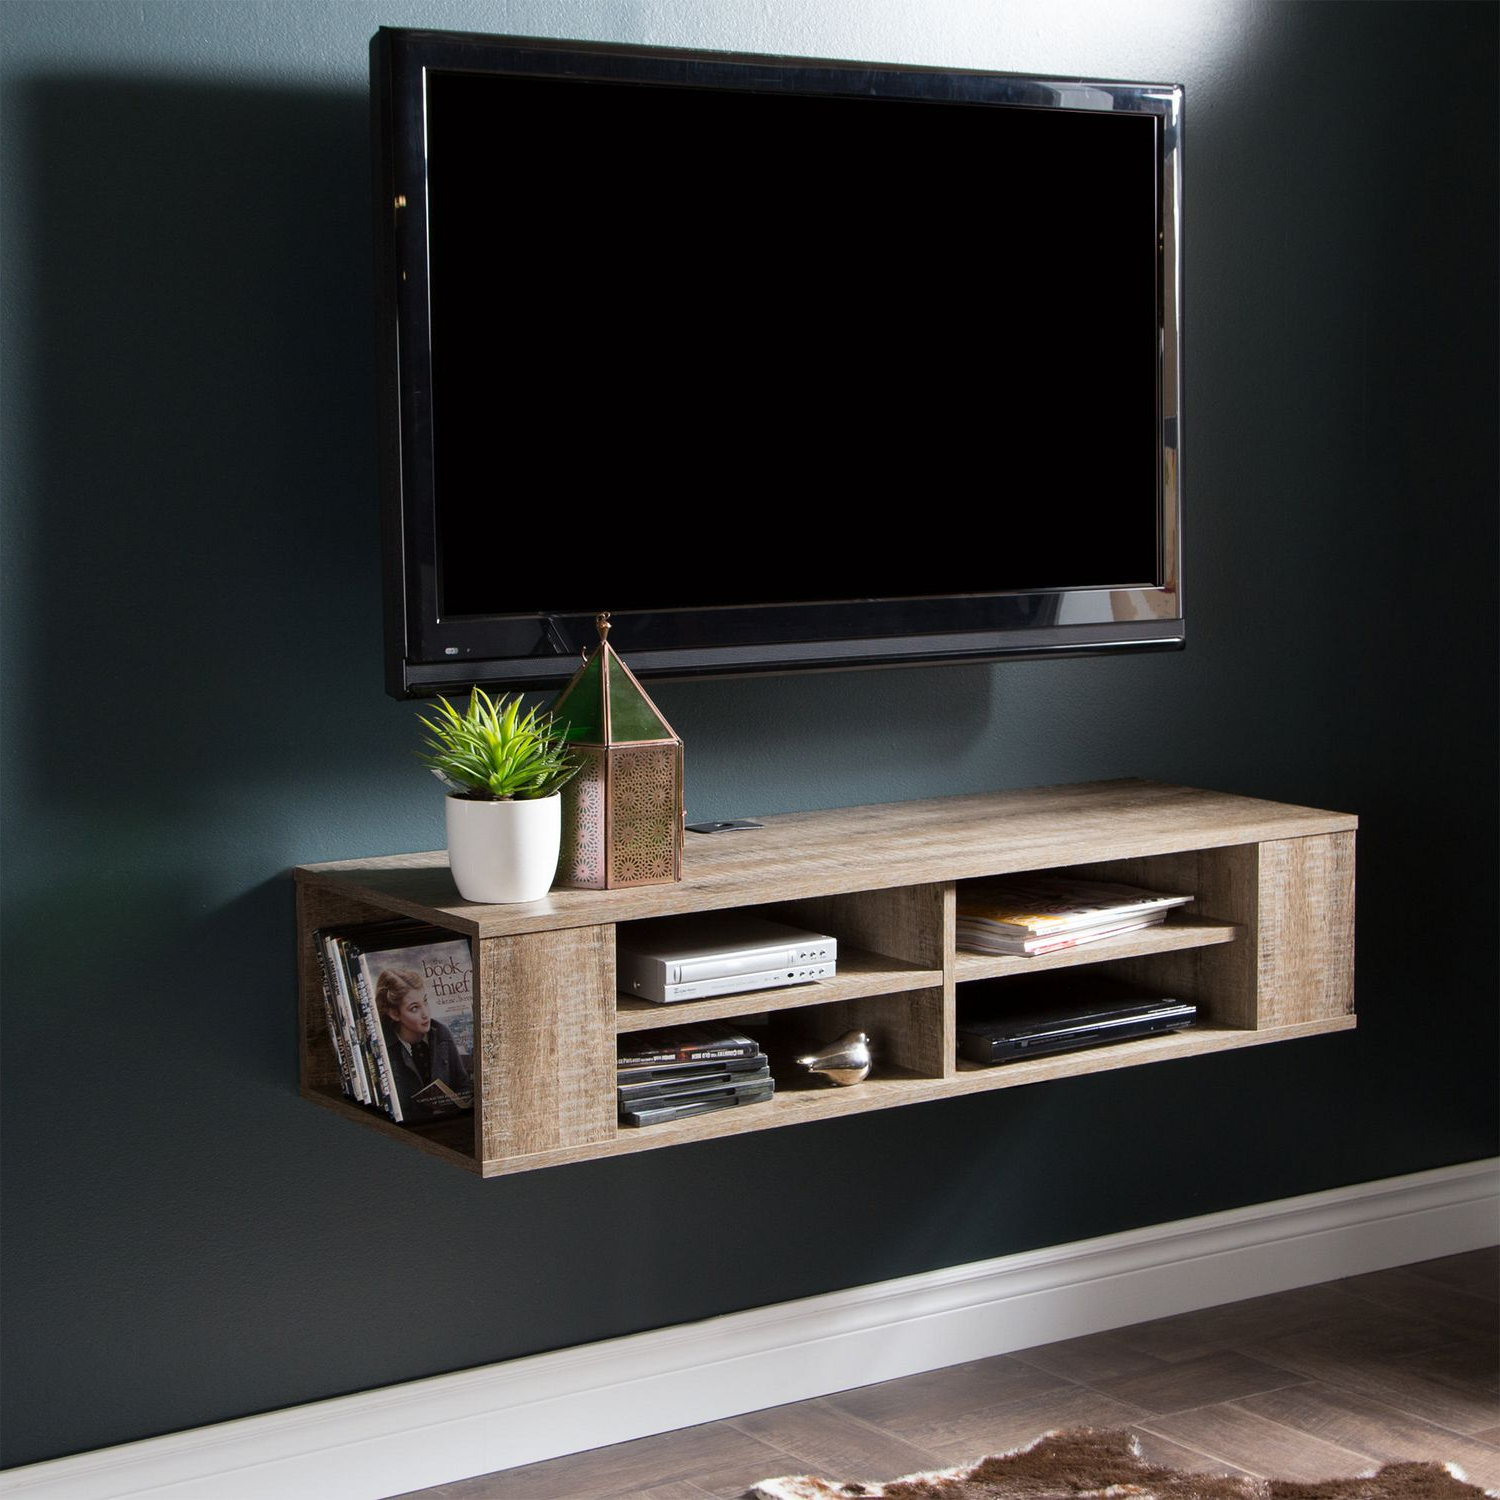 Fashionable Shelf For Under Wall Mounted Tv Home Theater Component Rack Ideas Pertaining To Wall Mounted Tv Stands With Shelves (View 19 of 20)